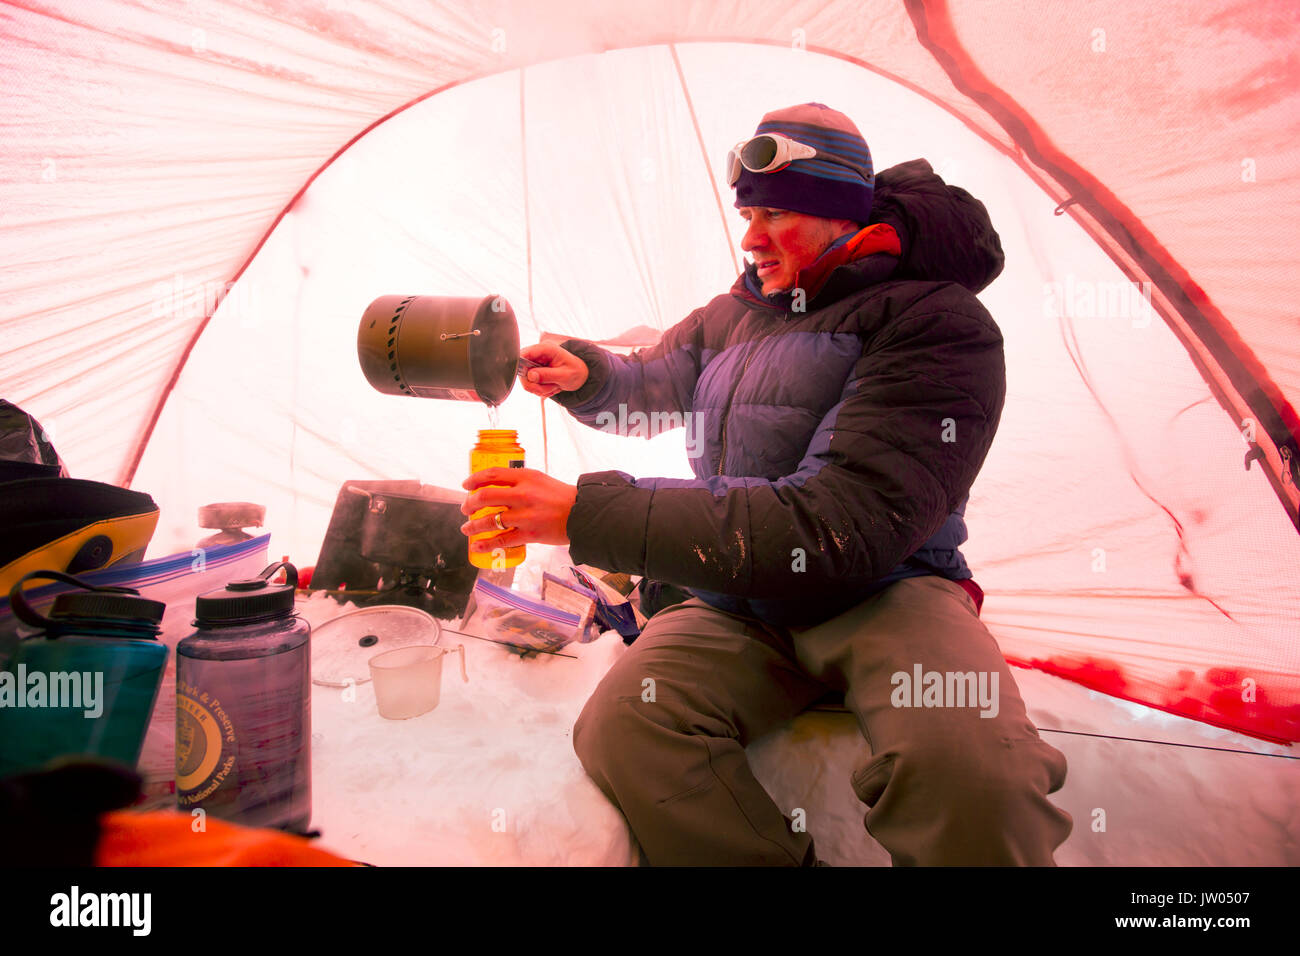 A mountaineers is melting snow to get drinking water, inside a tent at High Camp on Denali in Alaska. Early morning they are going for a summit push to the highest mountain of Northern America. - Stock Image